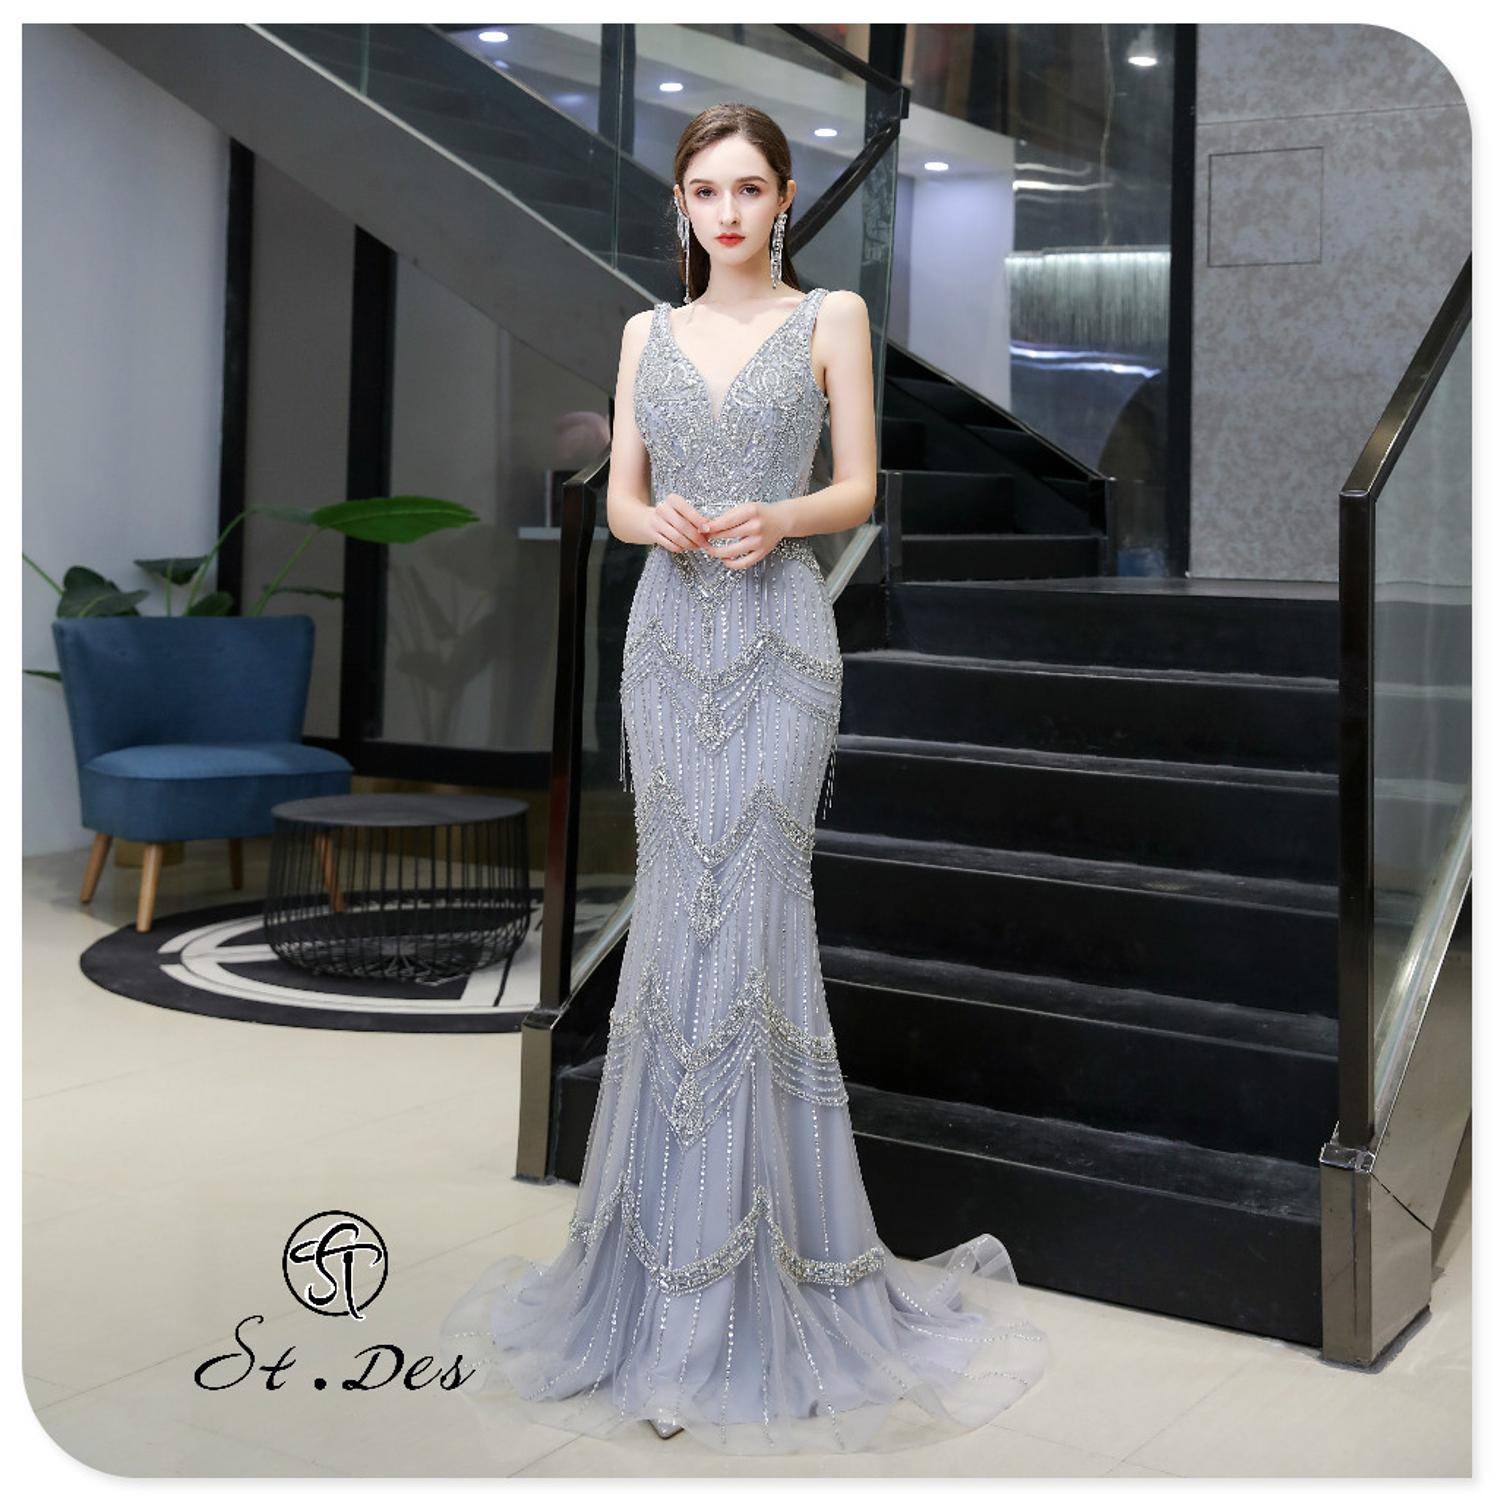 S.T.DES Evening Dress 2020 New Arrival V-neck Mermaid Short Cape Sleeveless Floor Length Party Dress Dinner Gowns